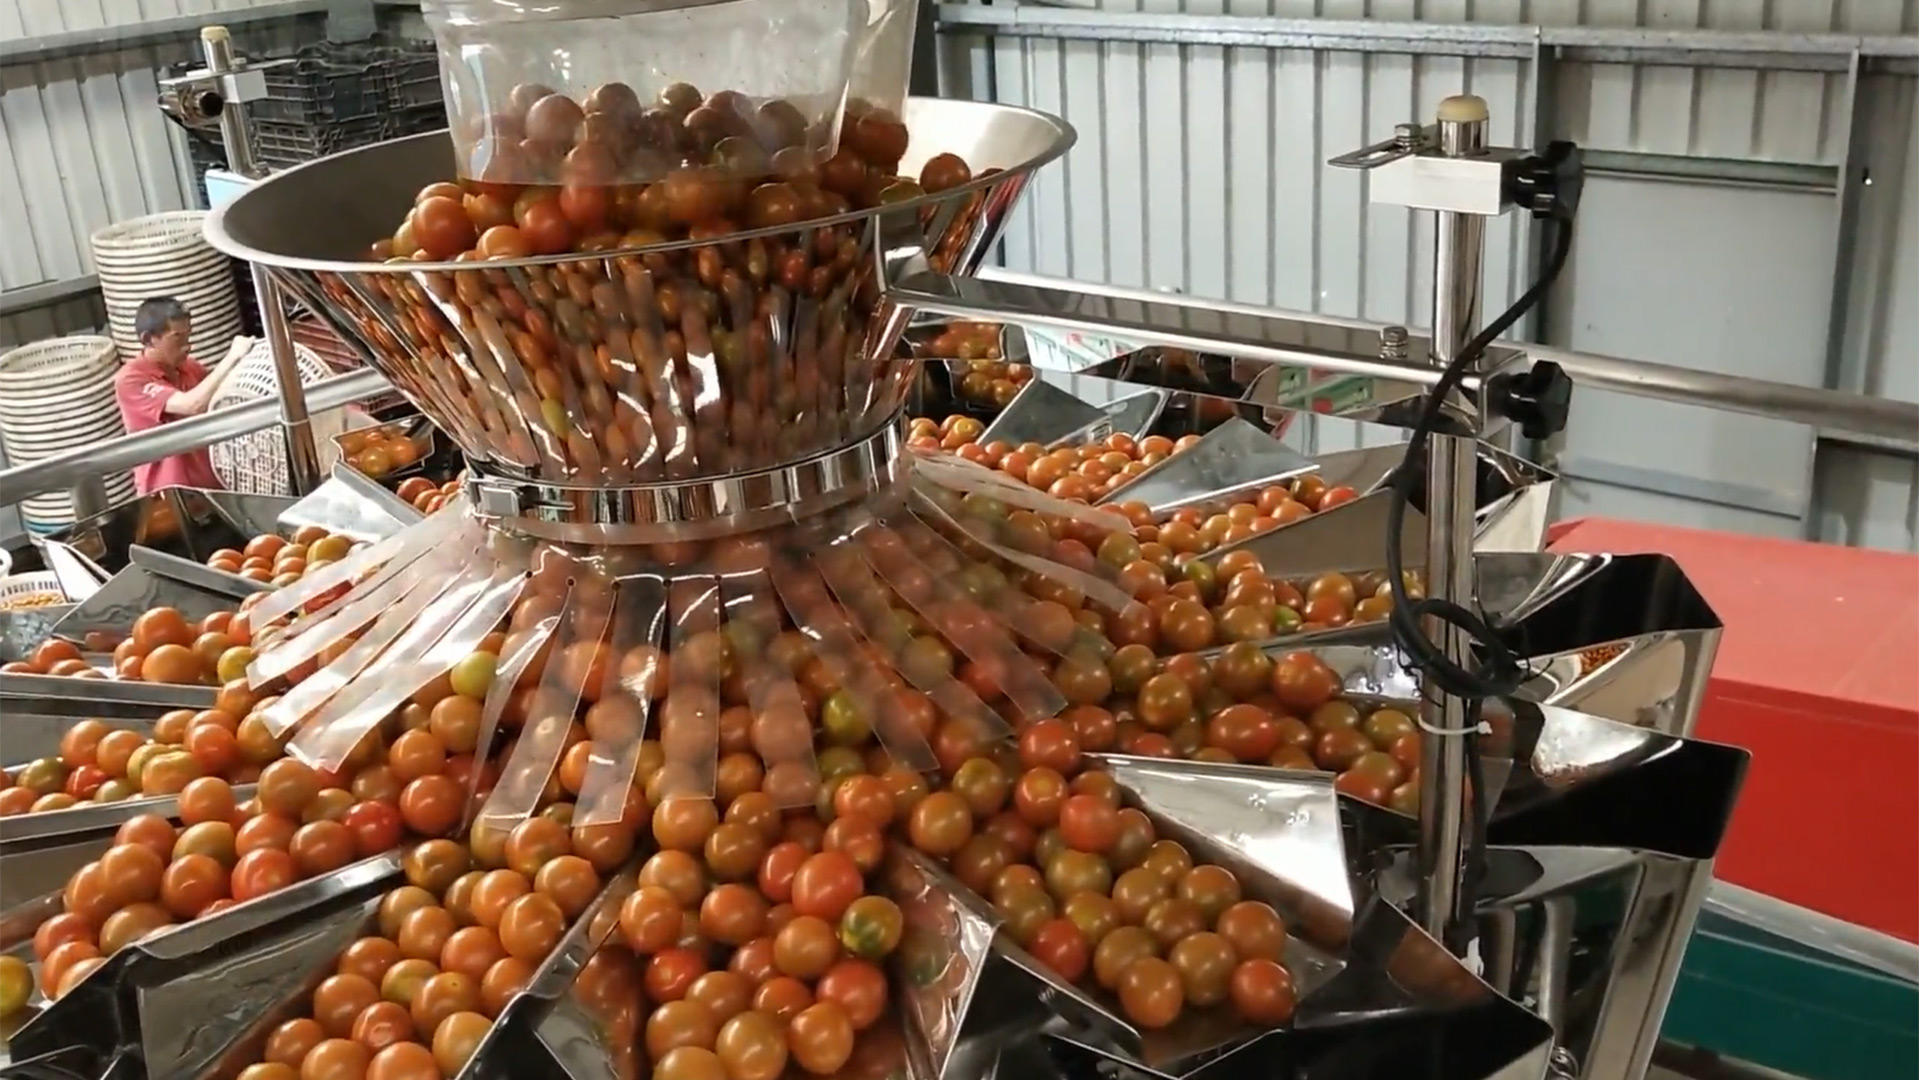 Automatic box packaging machine for tomatoes